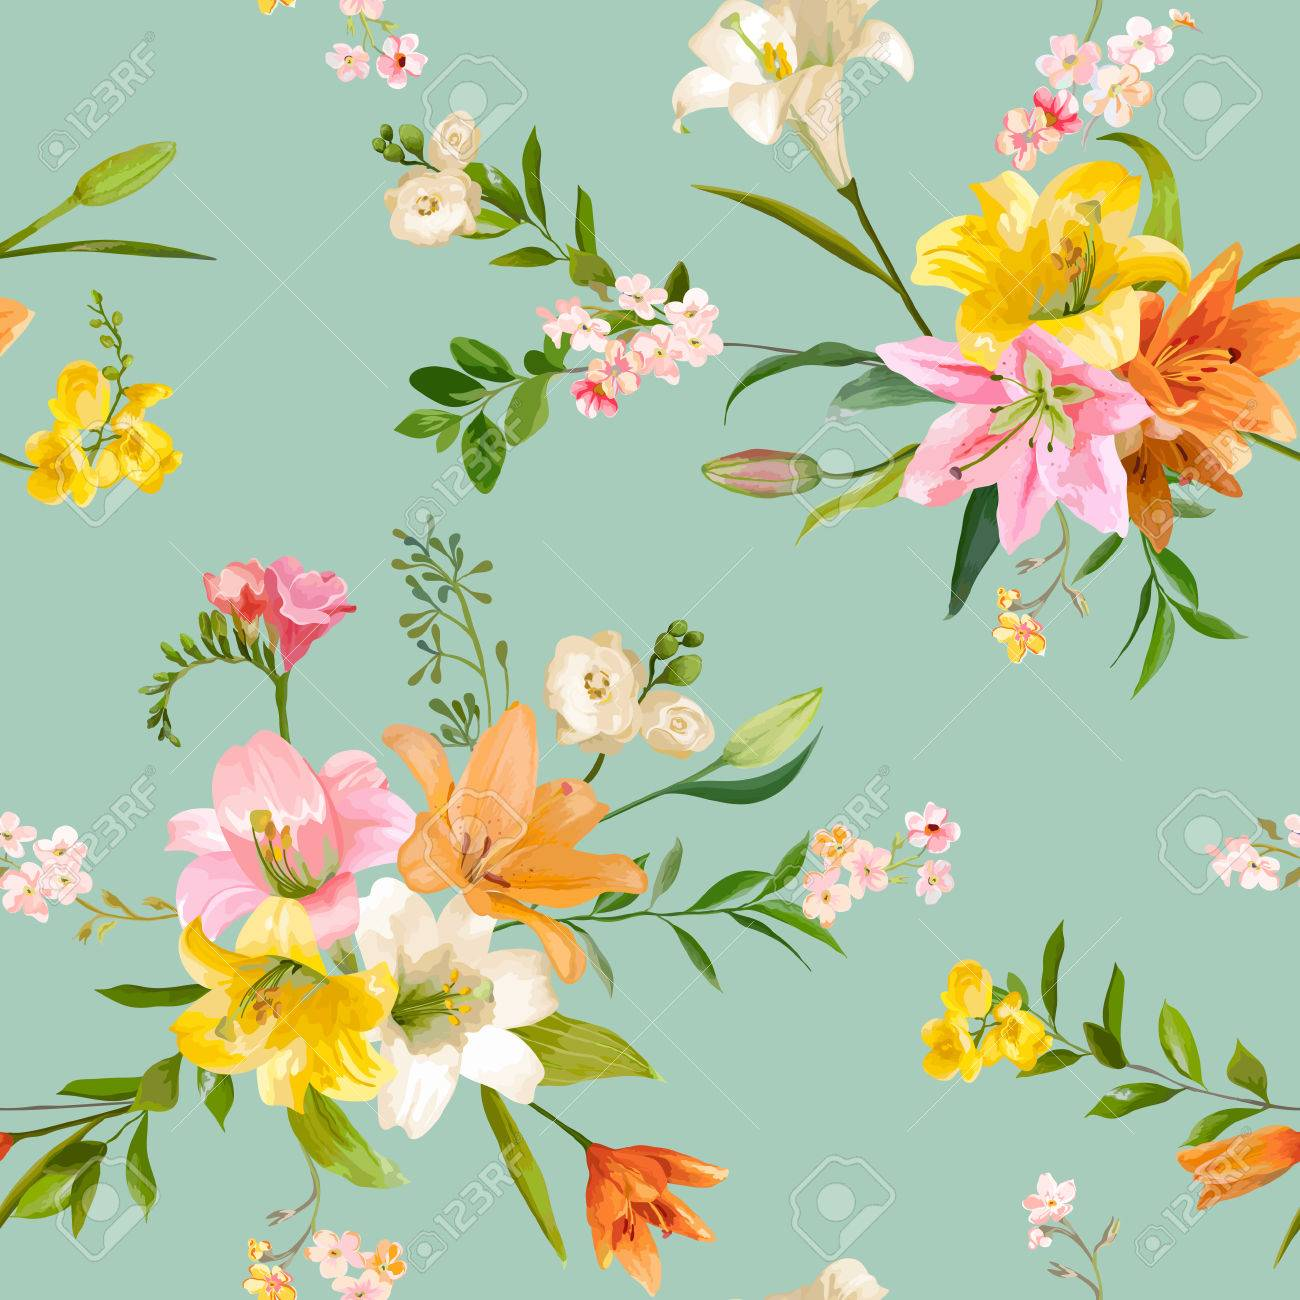 Vintage spring flowers backgrounds seamless floral lily pattern vector vintage spring flowers backgrounds seamless floral lily pattern in vector mightylinksfo